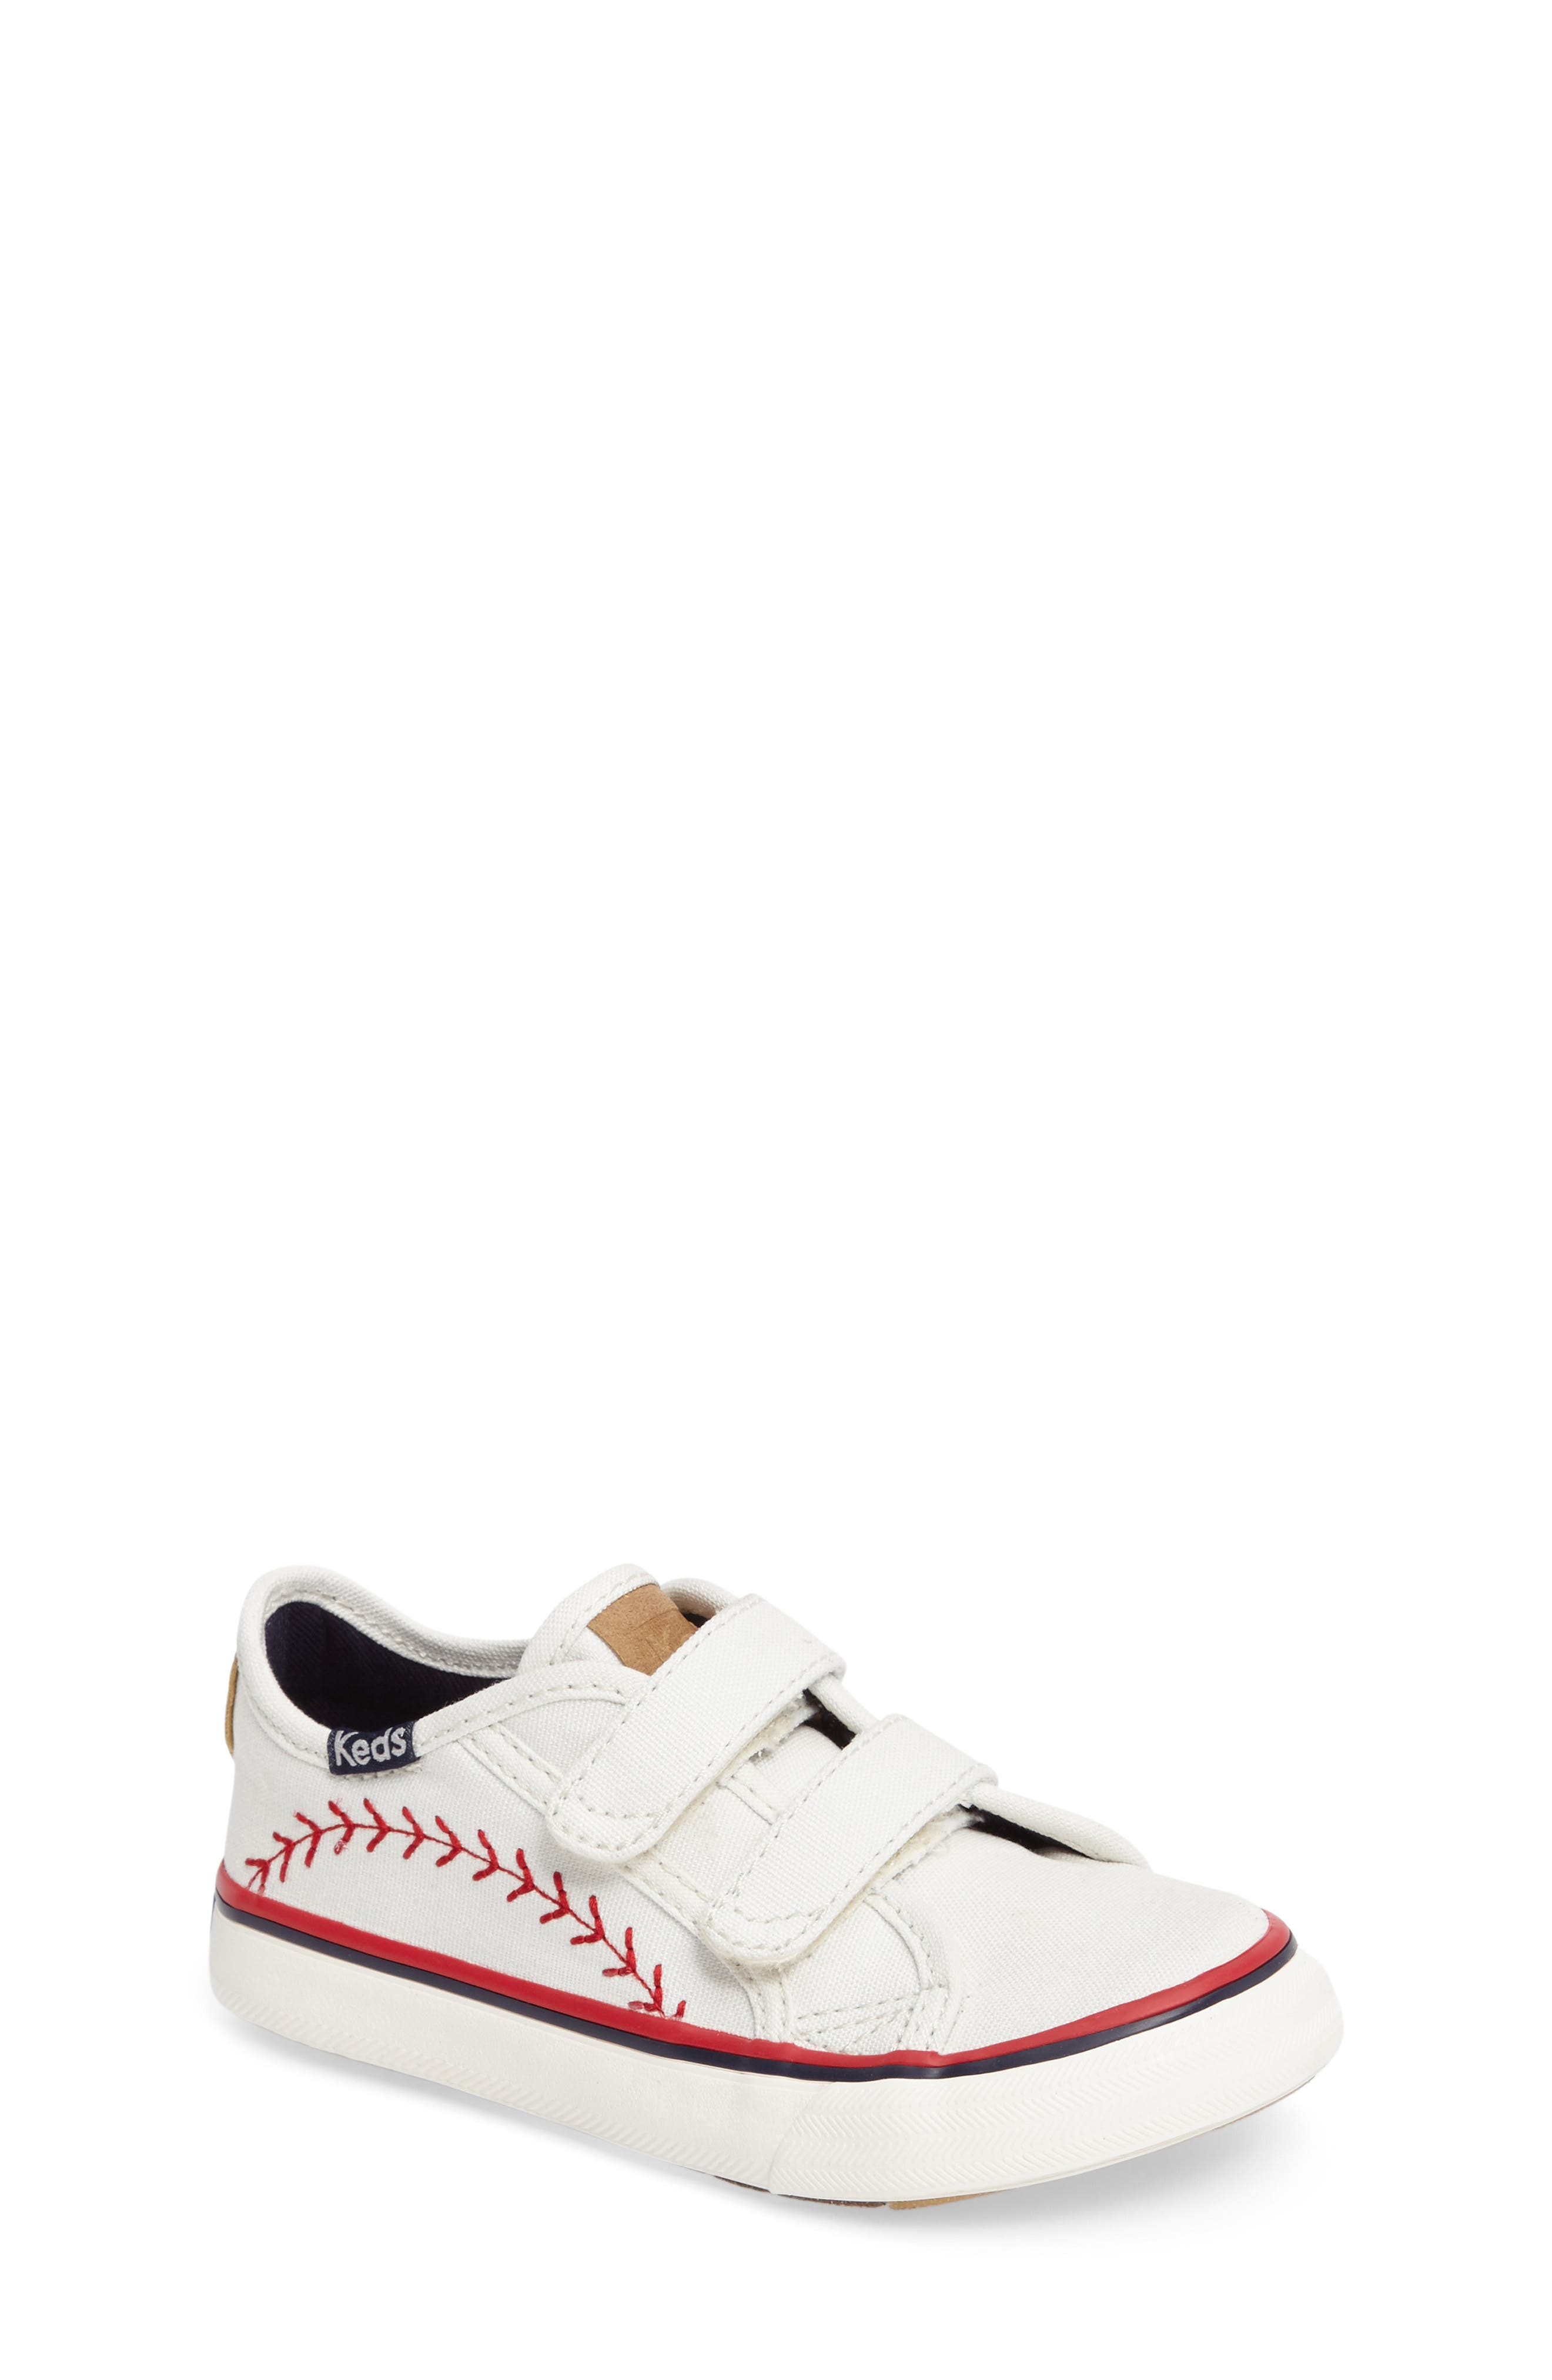 Pennant Double Up Sneaker,                             Main thumbnail 1, color,                             160